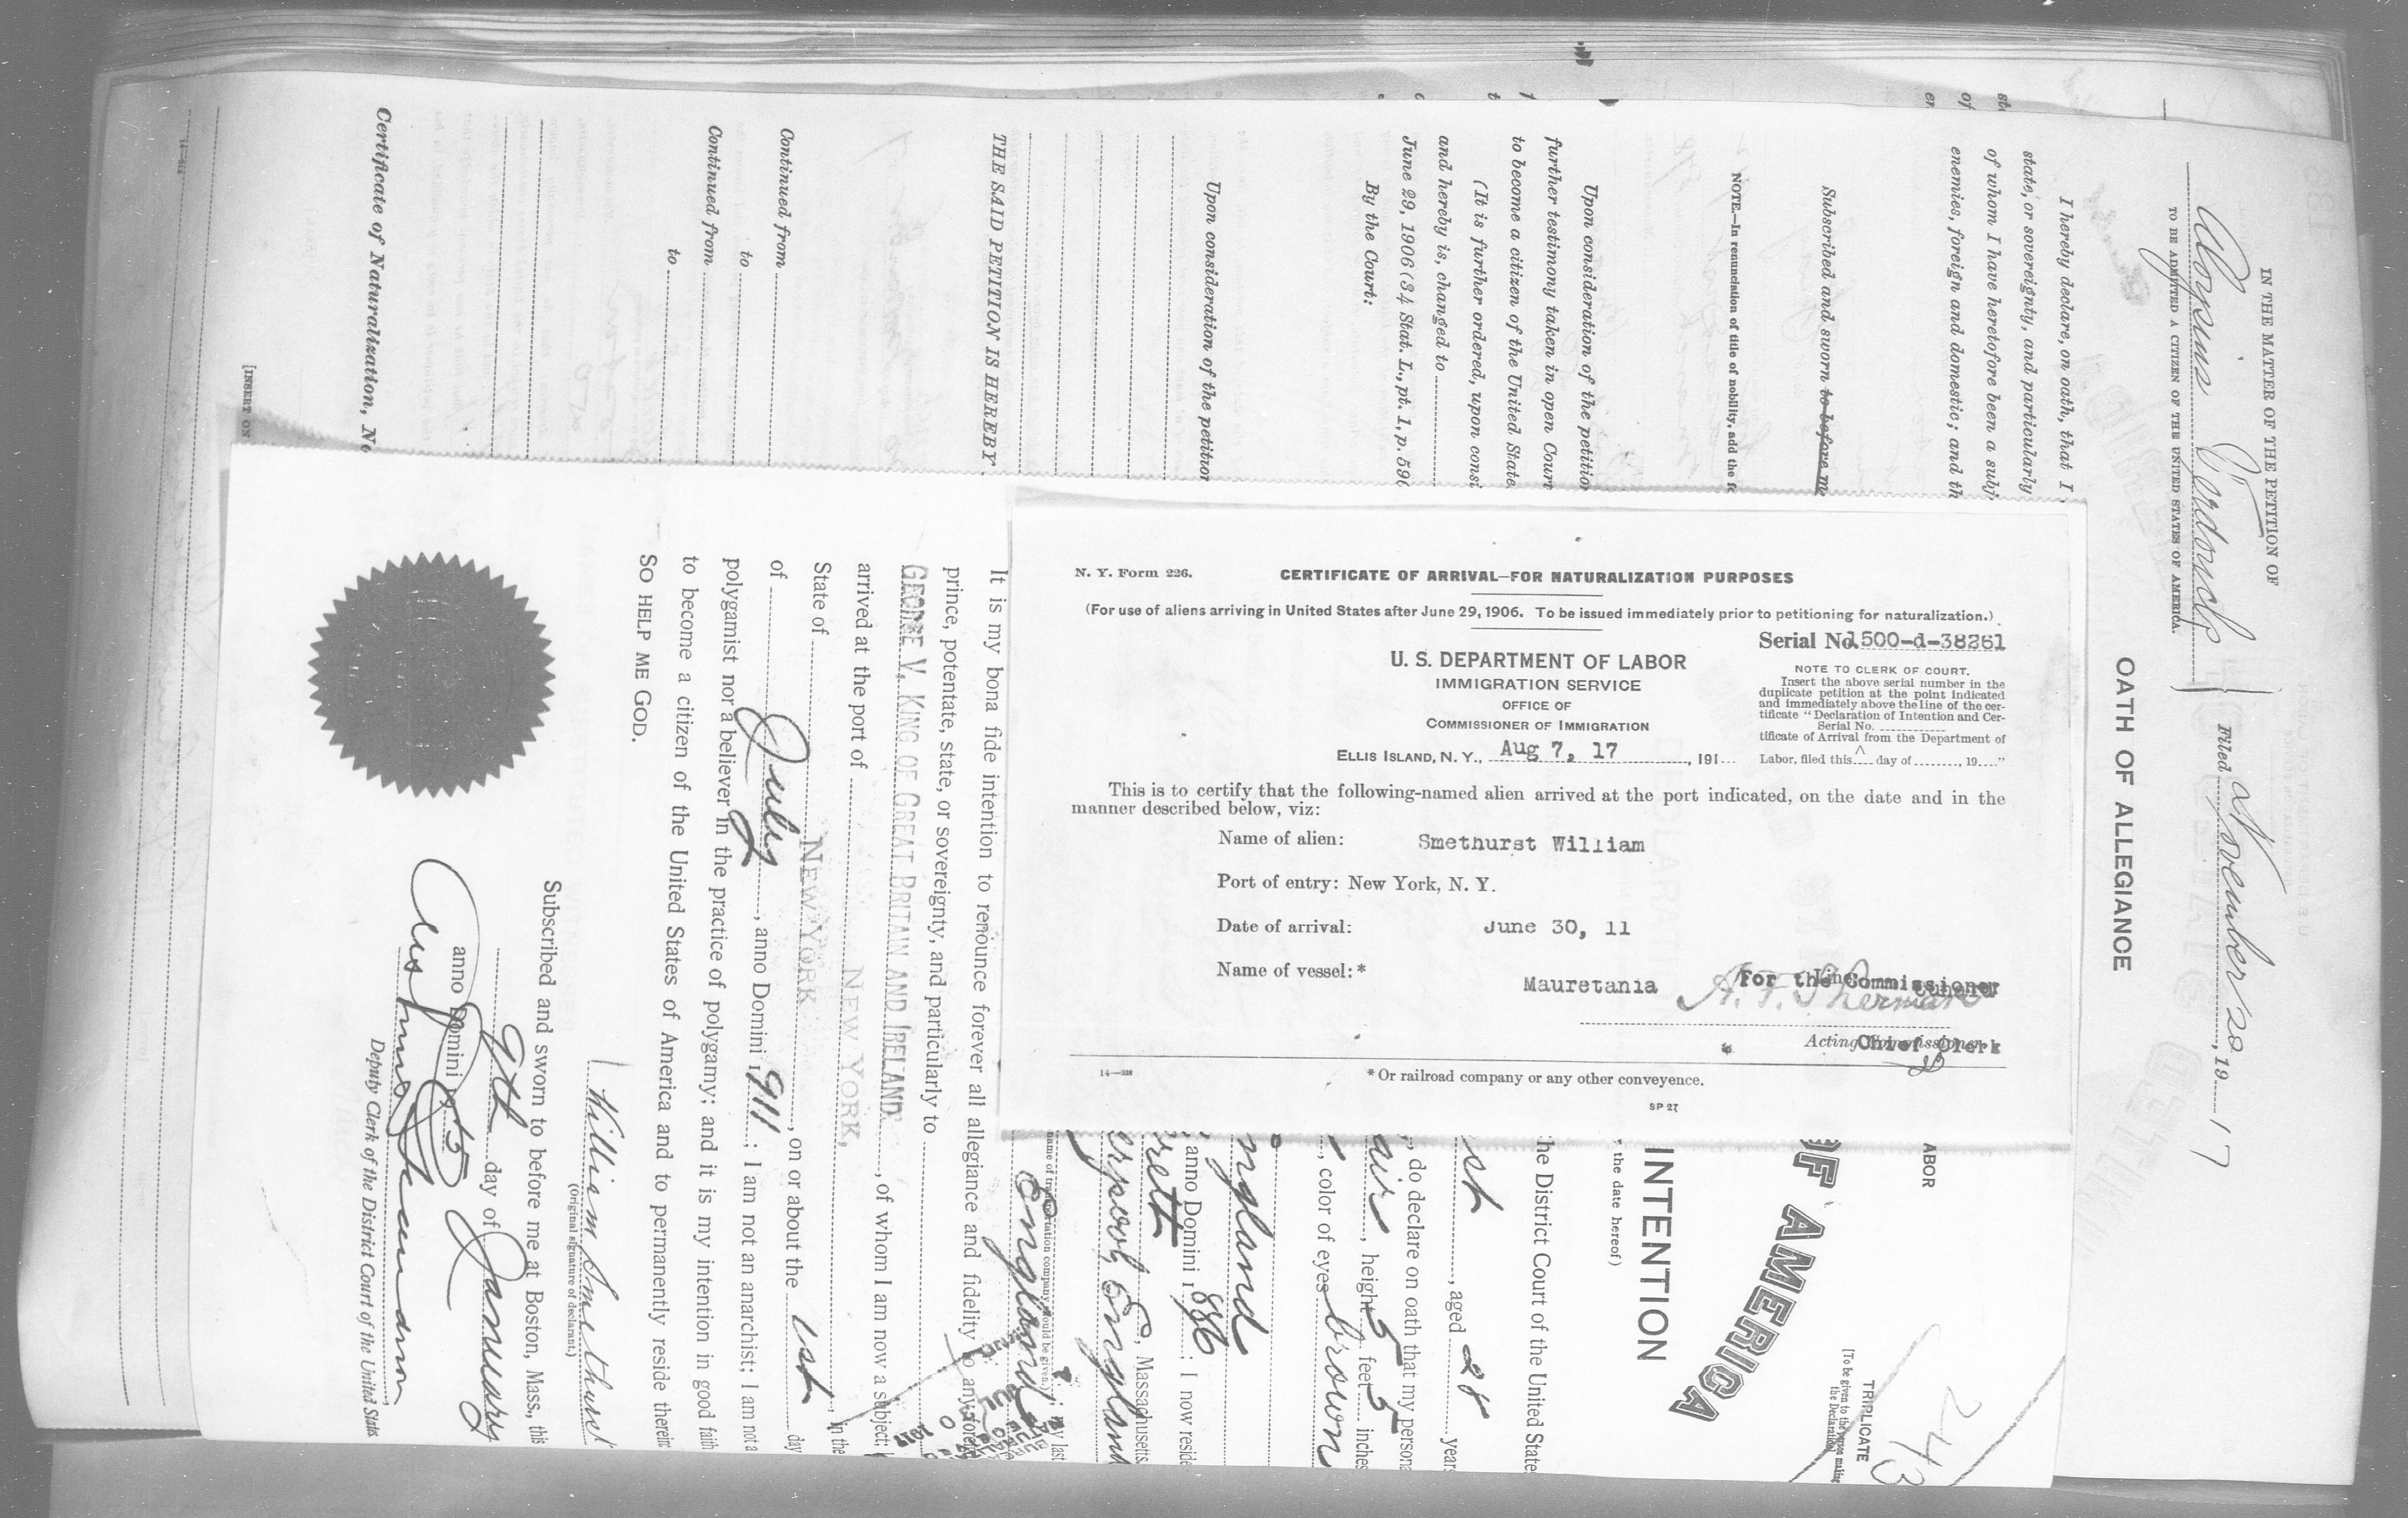 Petition for Naturalization of Smethurst William